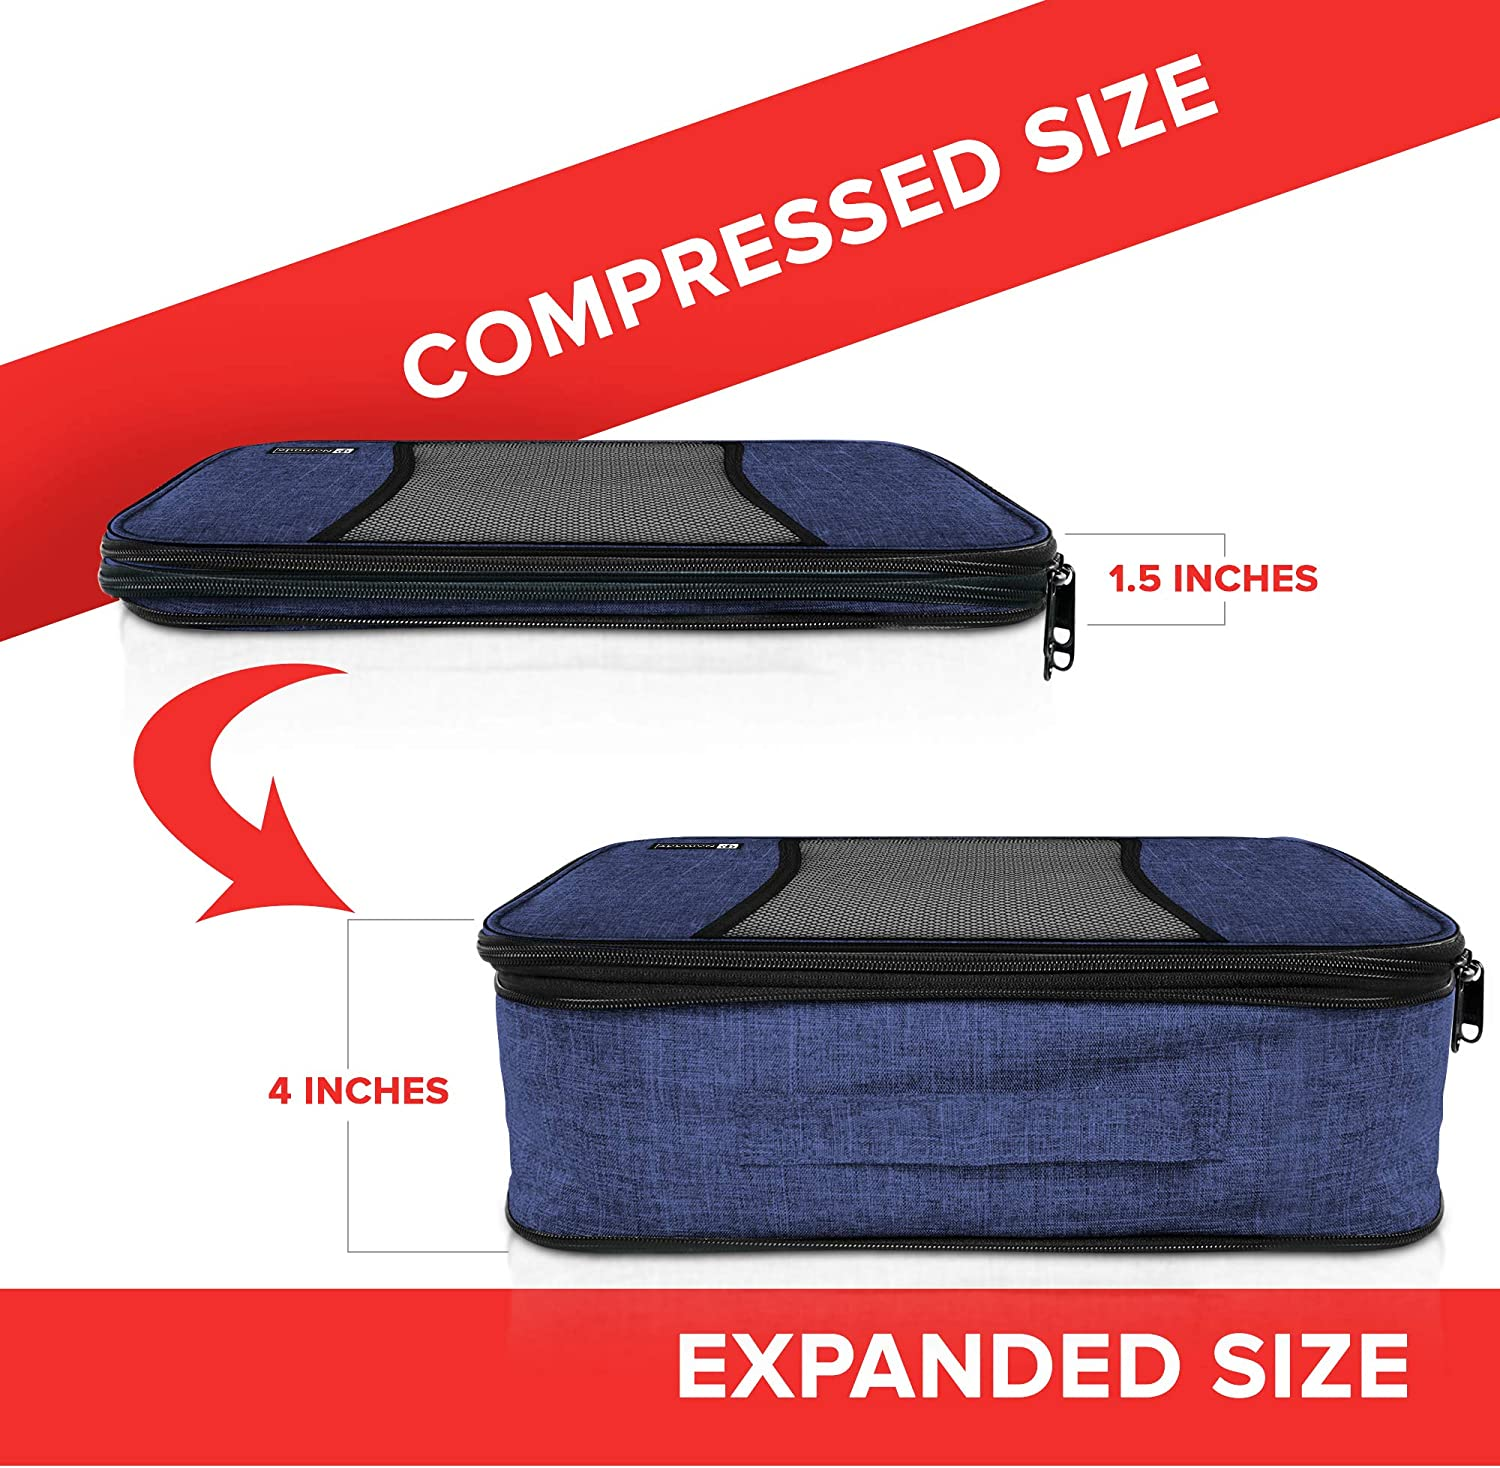 Navy Blue Compression Packing Cubes Travel Luggage-Organizer Set Packs More in Less Space